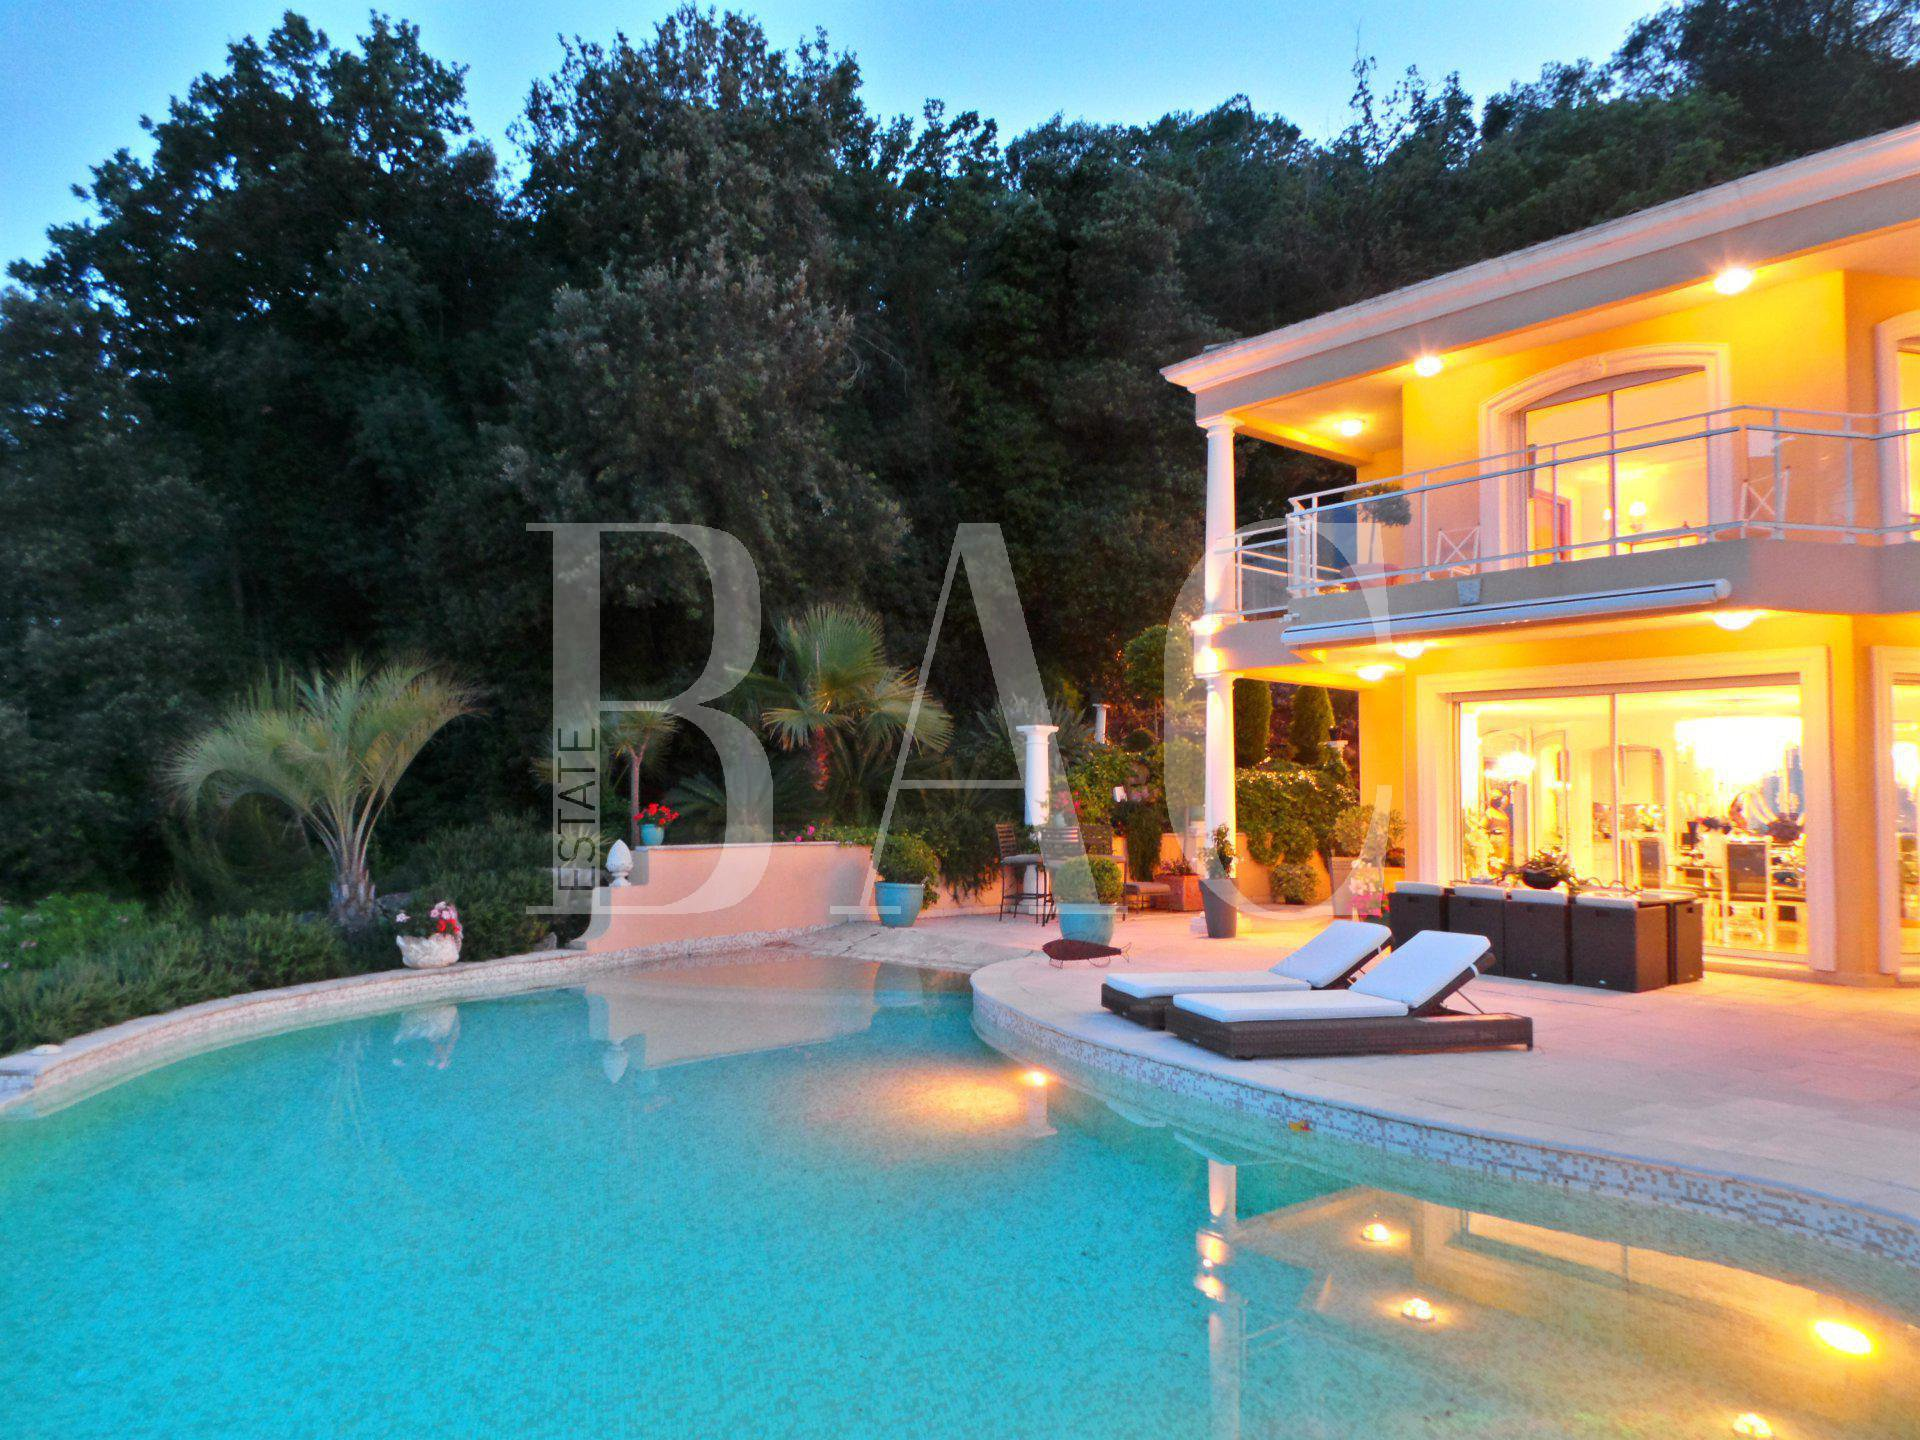 350 meters from Antibes, on the Hill of billionaires